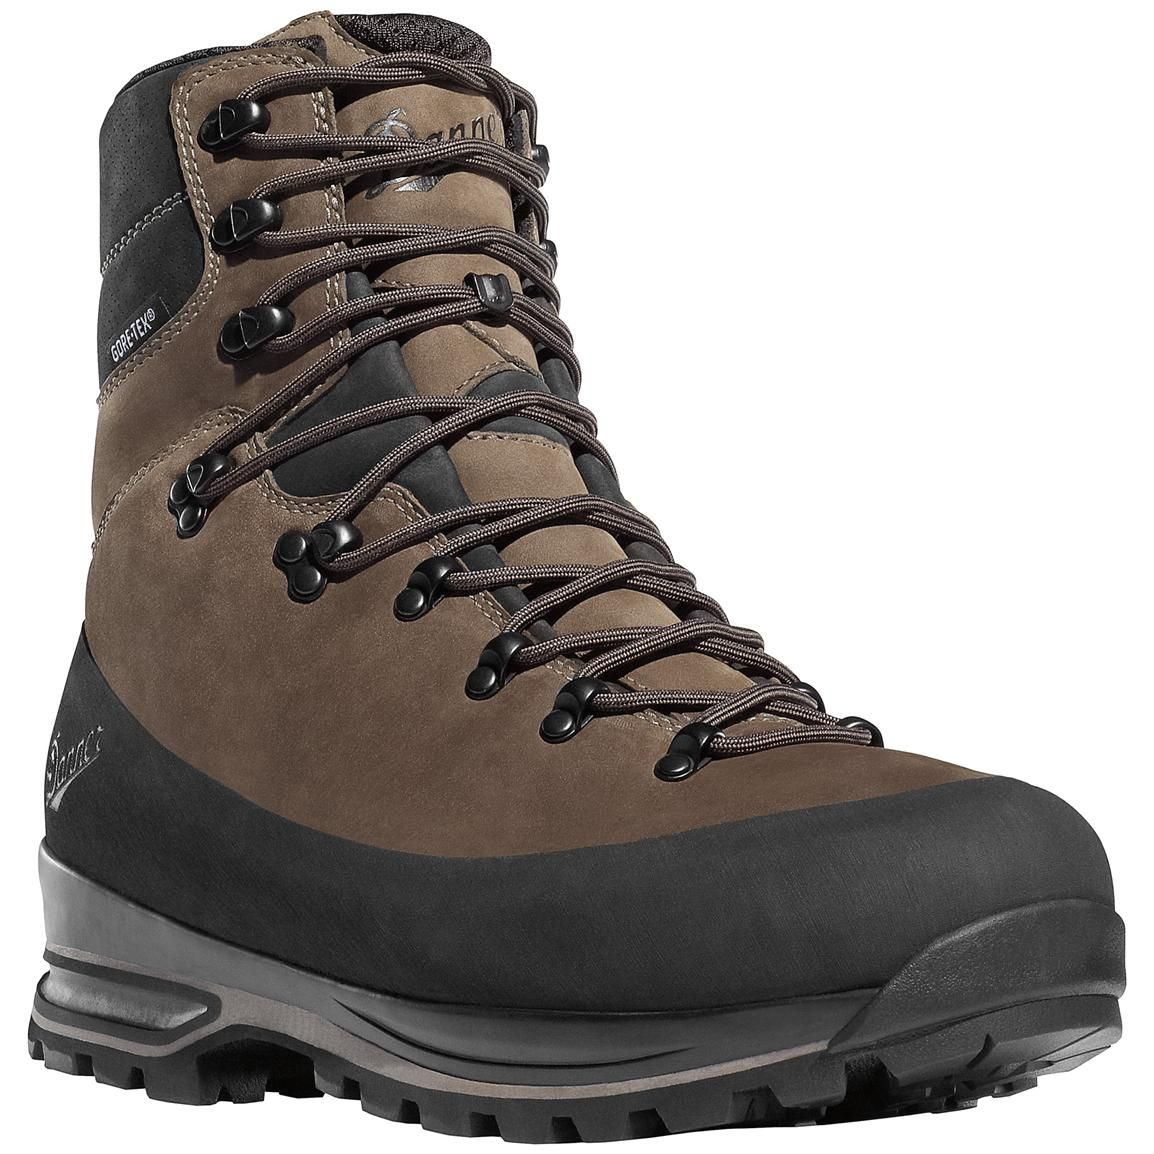 "Light II 6"" Brown Nubuck Leather (33000) Outdoor Boots  Gore-TEX (GTX) Waterproof Hiking Combat Boot  Mountain Boot  Downhill Braking and Side-Hill Traction  Made In USA"